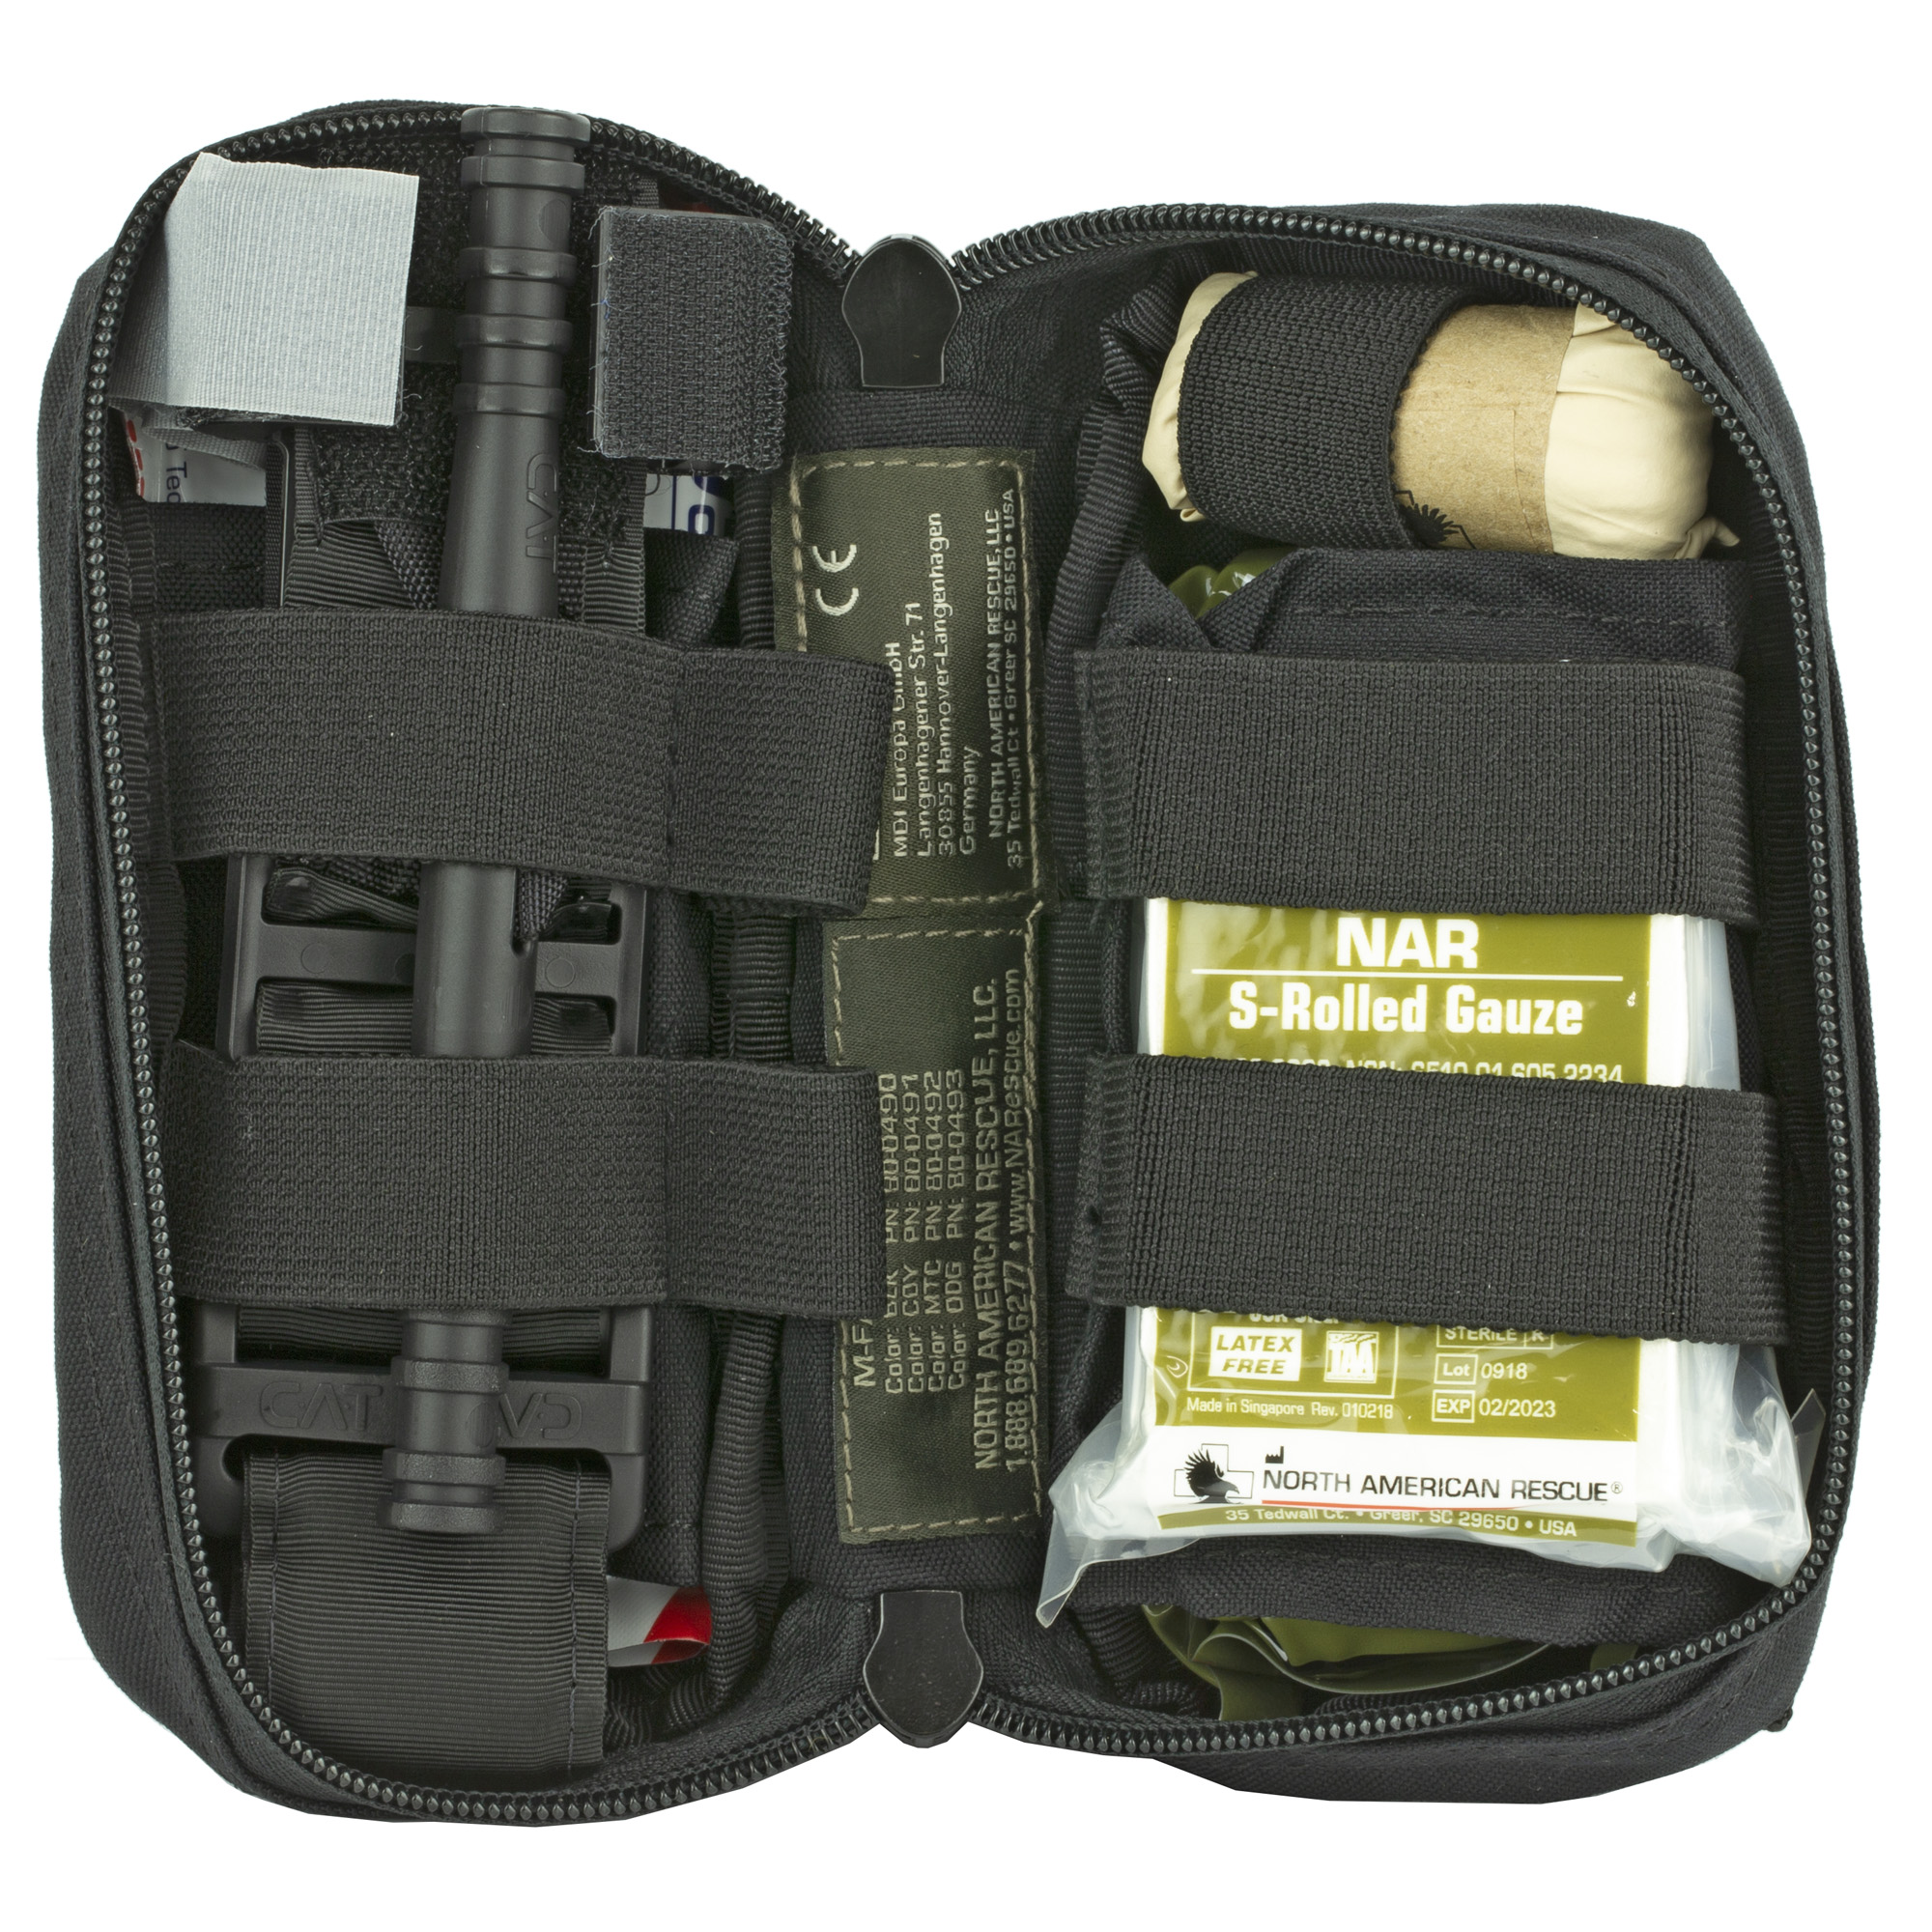 "North American Rescue's most compact"" half size First Aid Kit empowering First Responders with the most requested point-of-wounding equipment in the smallest cube space possible. The M-FAK"" North American Rescue's Mini First Aid Kit"" was designed to be the most compact"" multi-use IFAK for delivering immediate critical care for penetrating"" blast or other traumatic injuries. At half the size of our popular T.O.R.K. platform"" the M-FAK is currently the smallest platform available in our product offering. Despite its reduced size"" this kit comes fully loaded with the critical medical equipment most requested by First Responders operating in the line of duty. Treatment pack out options include Basic"" Basic with Combat Gauze and Advanced versions. The M-FAK's super compact"" 500 Denier nylon bag opens from the side in a clam shell configuration utilizing (2) two main sleeves that open on both ends for easy access and features multiple elastic loops for secure gear organization. The bag's exterior includes a MOLLE backing for mounting in the standard vertical position as well as a 3 in. internal sleeve for accommodating horizontal attachment to your duty belt. The vertical mount can be set to open left-to-right or right-to-left based on shooter preference"" while the horizontal mount on a belt allows opening directly to your C-A-T.(R) tourniquet. Also included are a loop patch on front of the bag for custom user labeling and (3) three MOLLE strips to attach additional gear such as a TQ/Holder (sold separately) if needed."